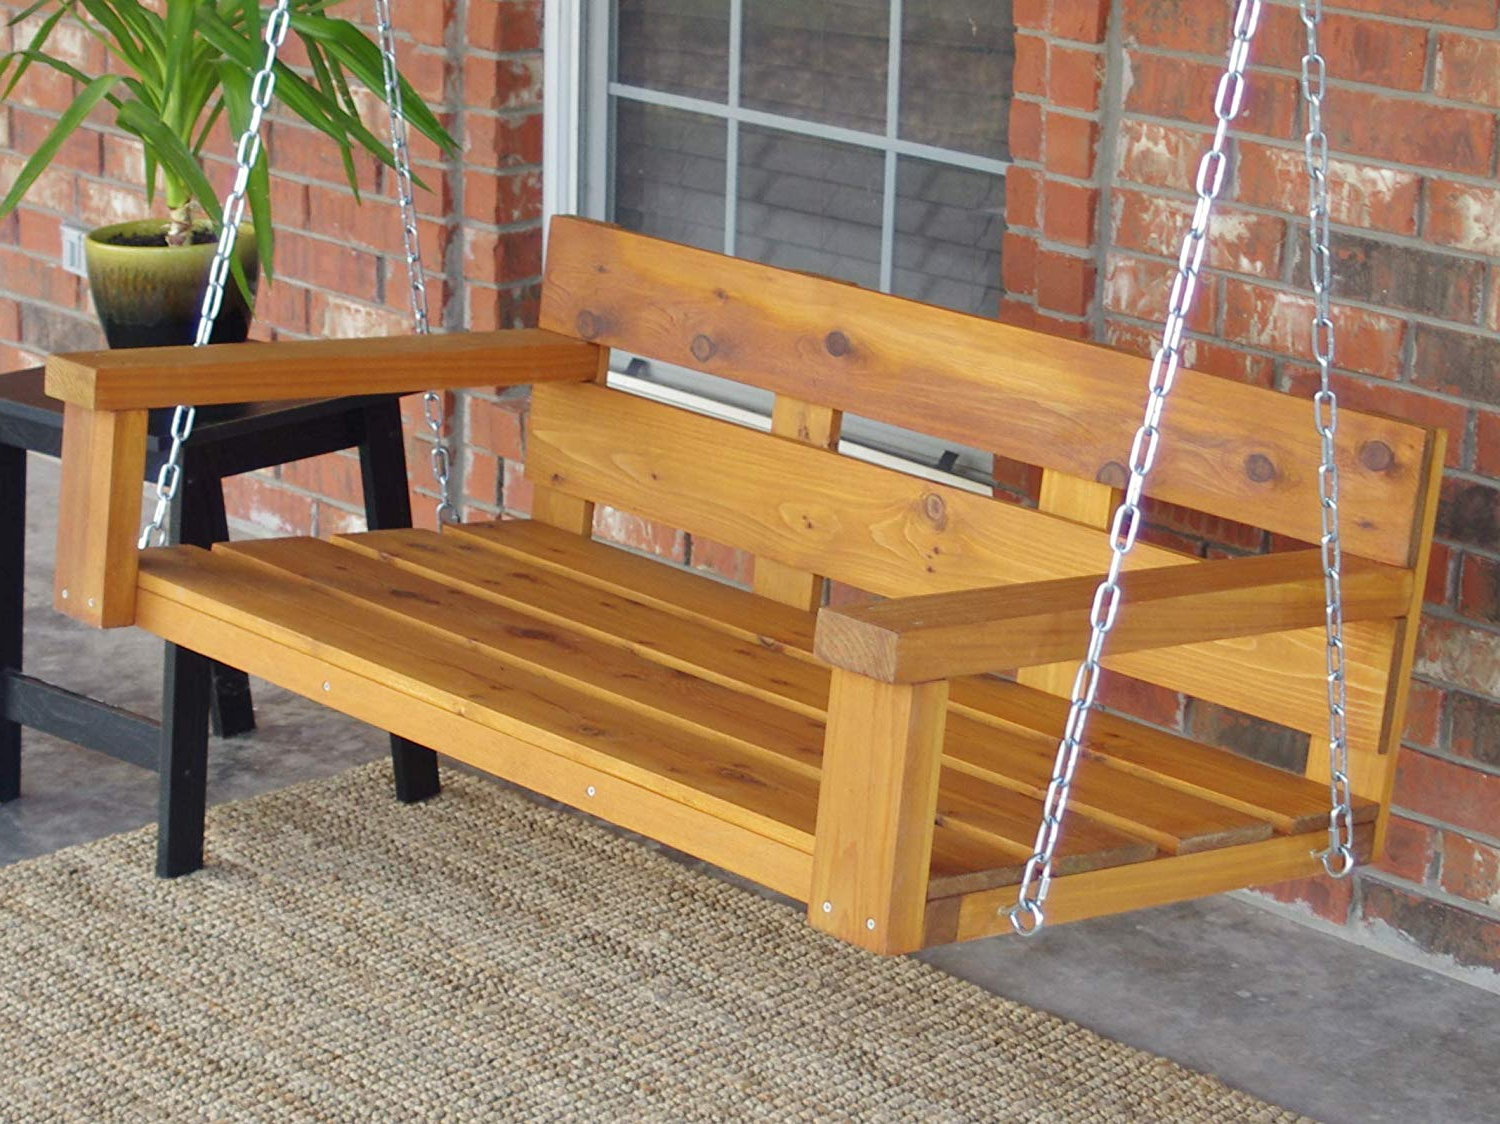 Recent Three Man Ranch Style Cedar Porch Swing With Chain – 6 Ft With Stain & Sealant – Cedar Naturaltone With Regard To Porch Swings With Chain (View 5 of 30)